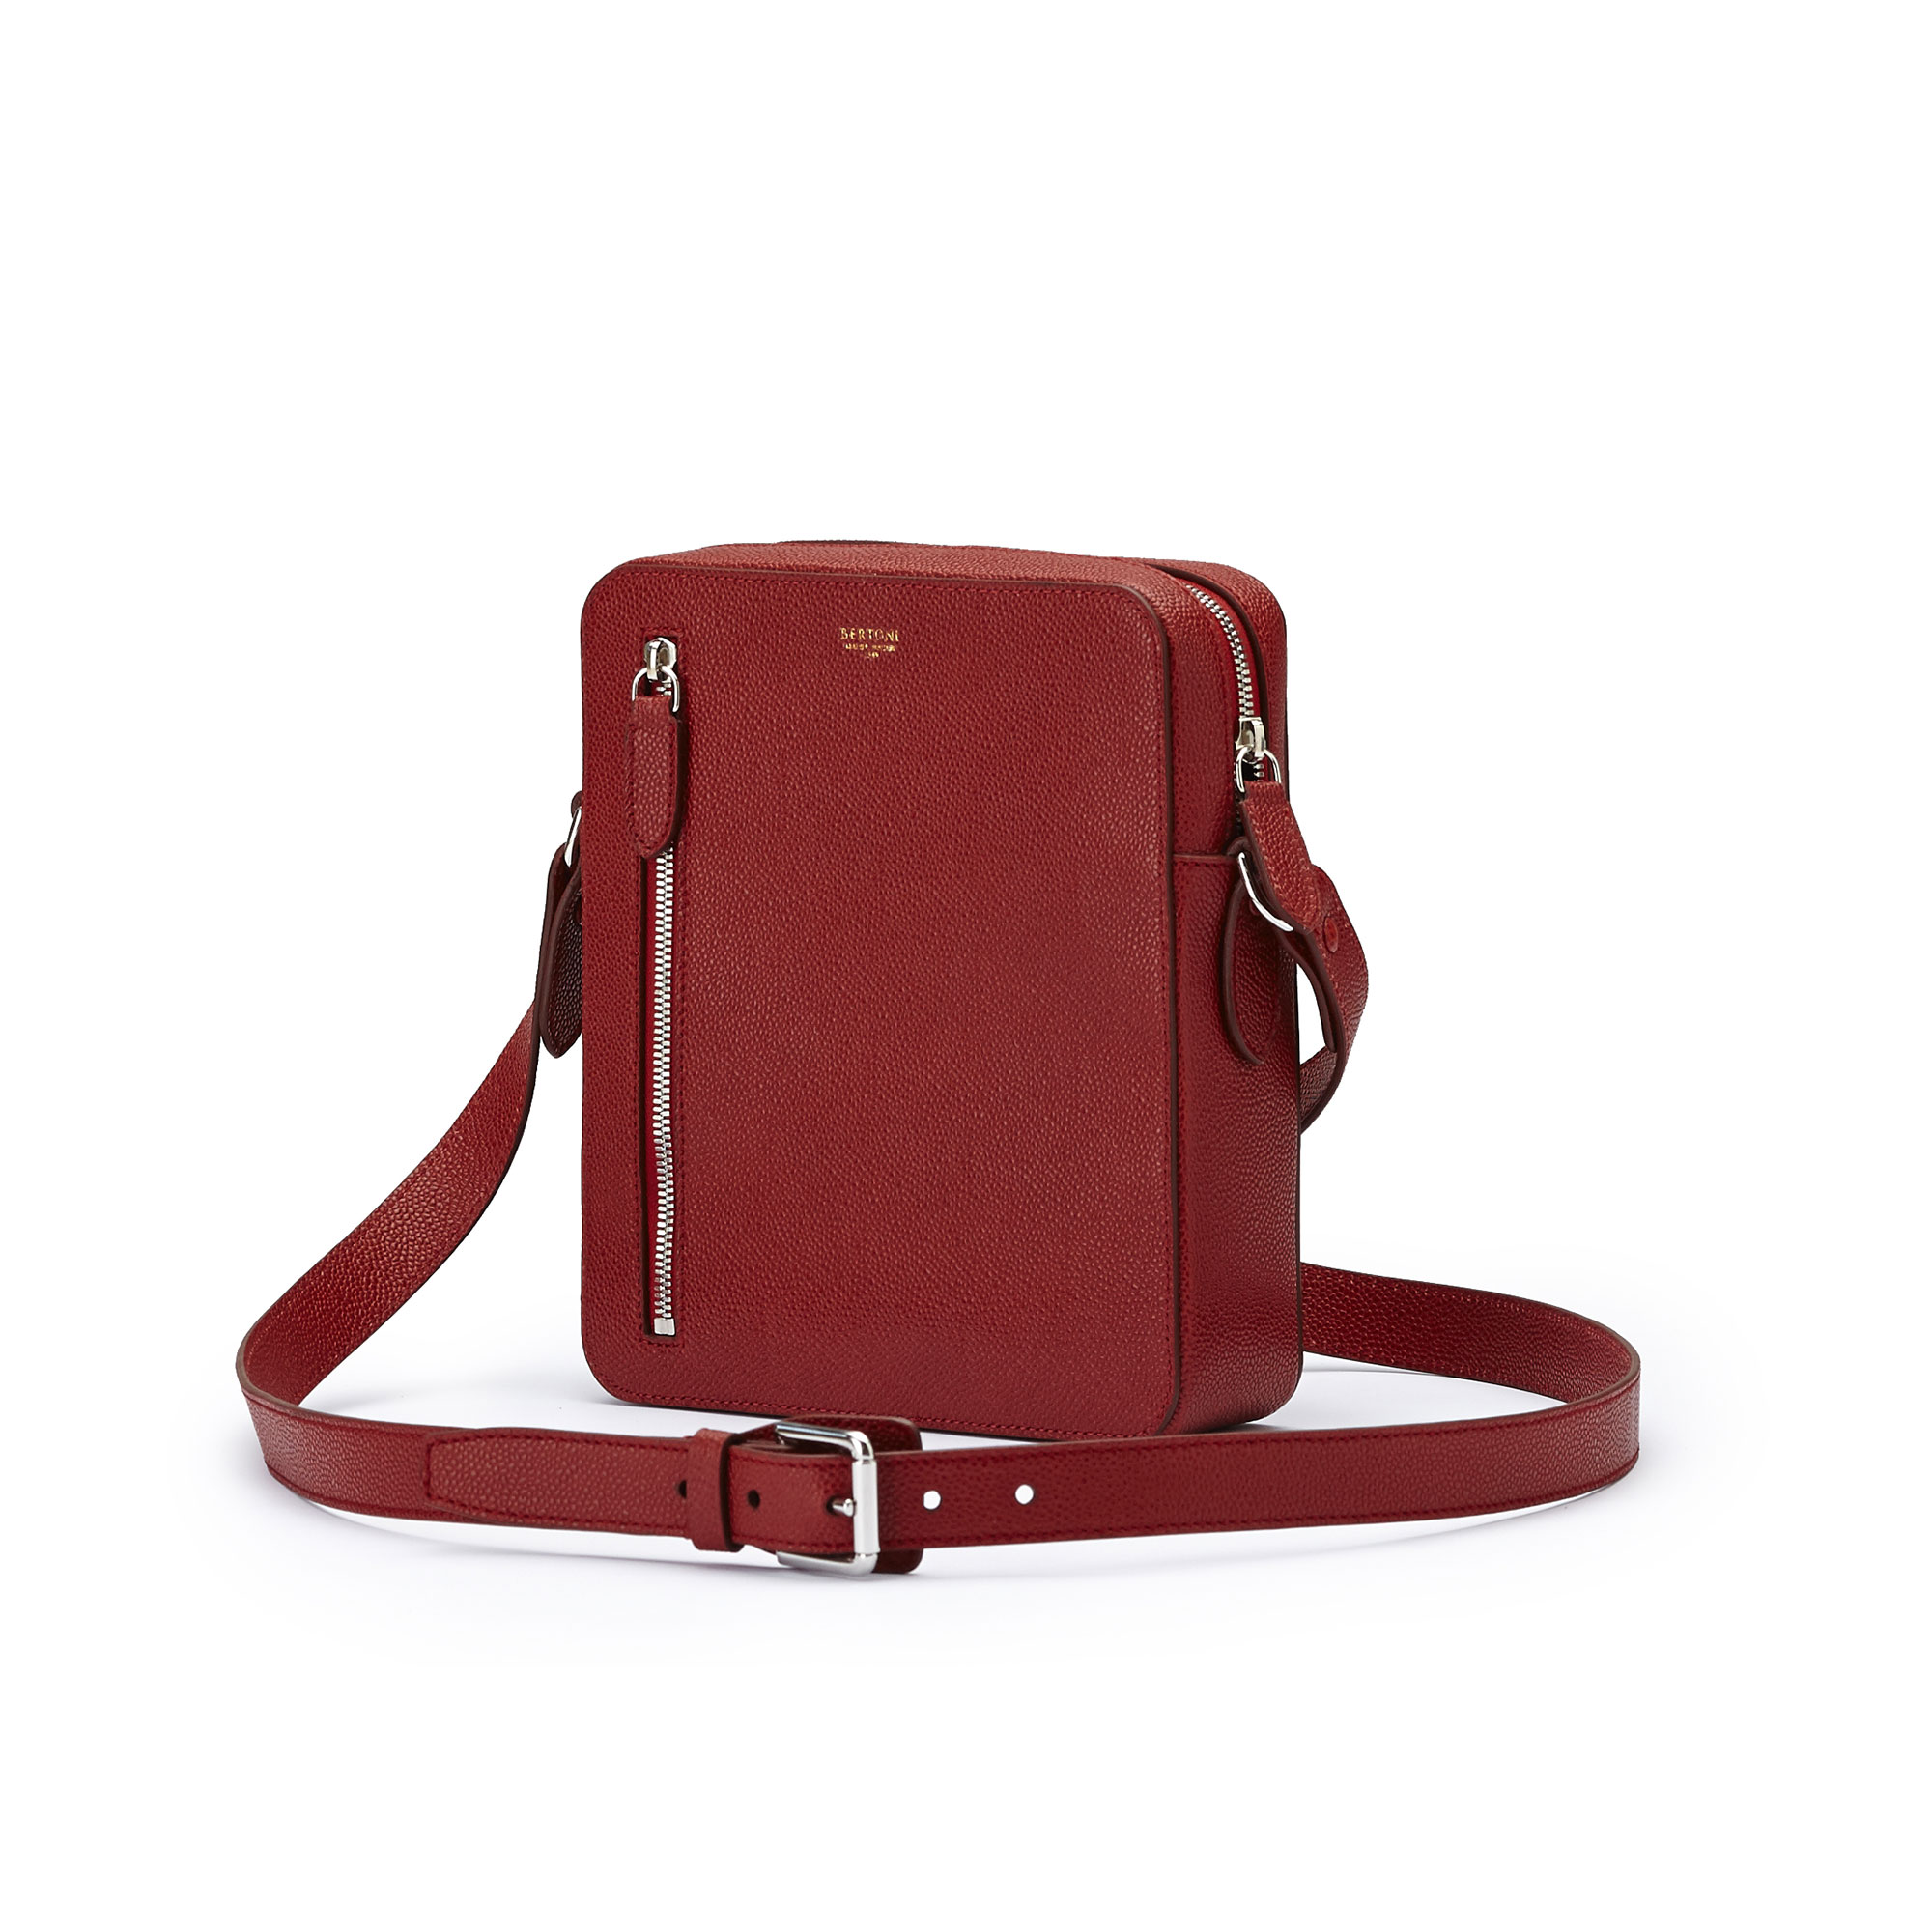 The red grain calf Man Bag by Bertoni 1949 02